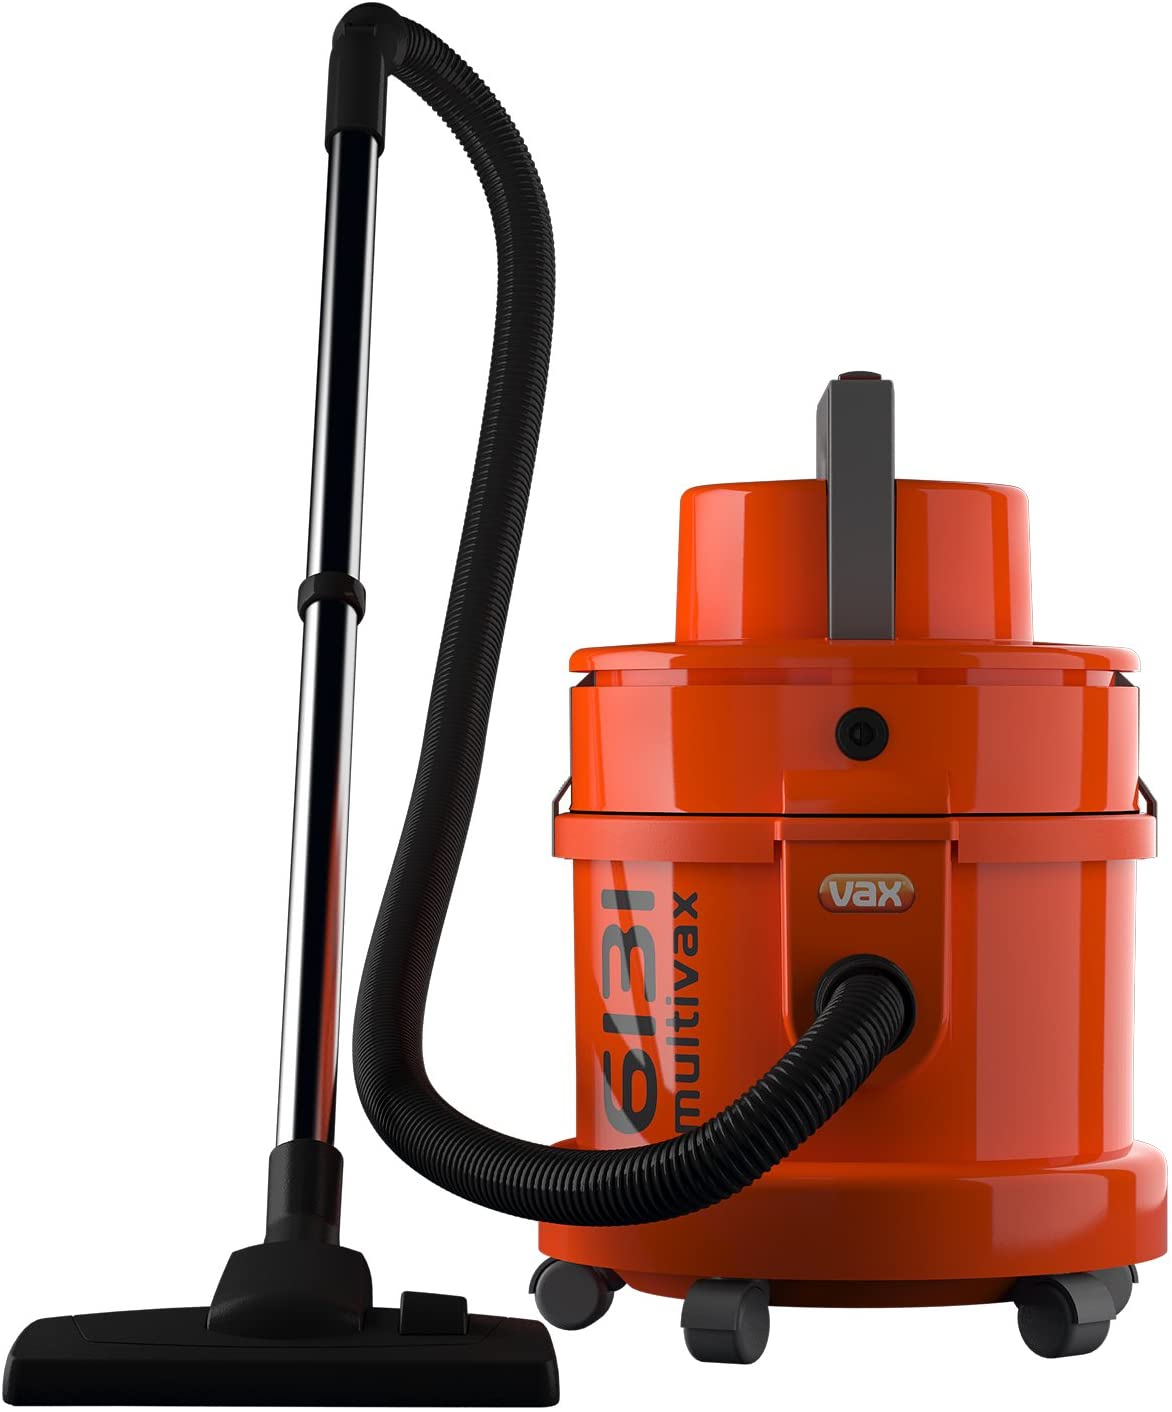 Vax 3 in 1 canister vacuum cleaner